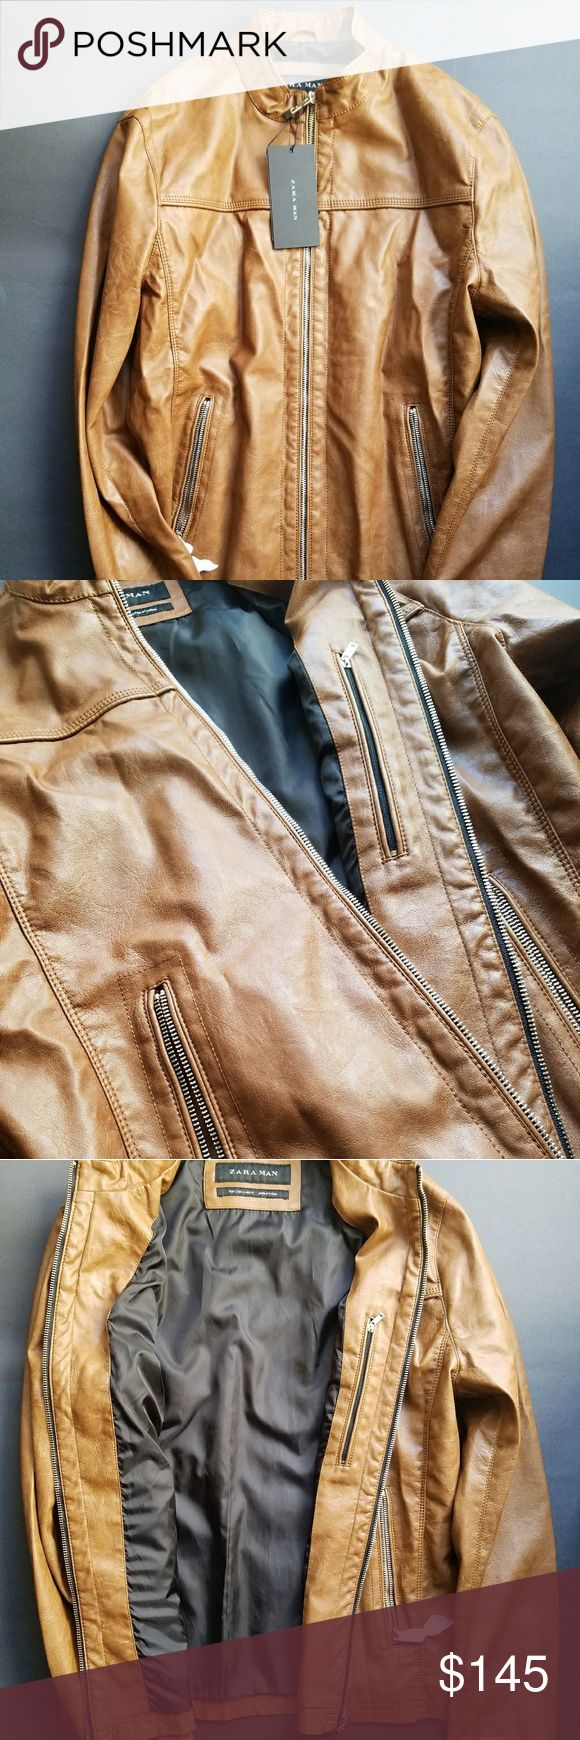 🚨🚨ONE DAY JACKET WEAR SALE🚨🚨 🚨🚨PRICE AS SHOWN🚨PRICE HAS ALREADY BEEN MARKED DOWN 🚨🚨 Leather men's jacket Zara Jackets & Coats Performance Jackets